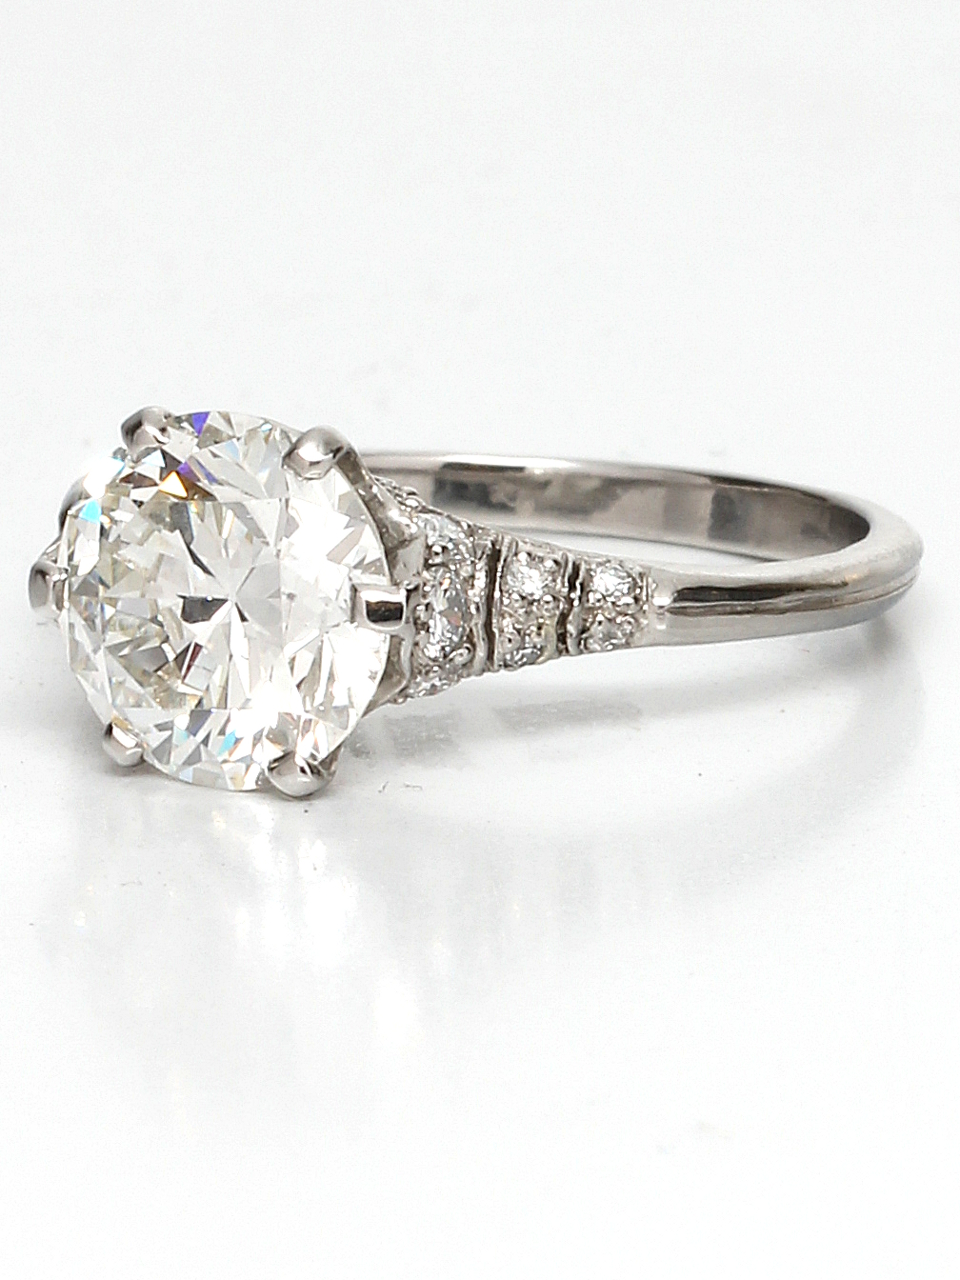 Edwardian Style Platinum 2.36ct Round Brilliant G-SI1 Diamond Engagement Ring